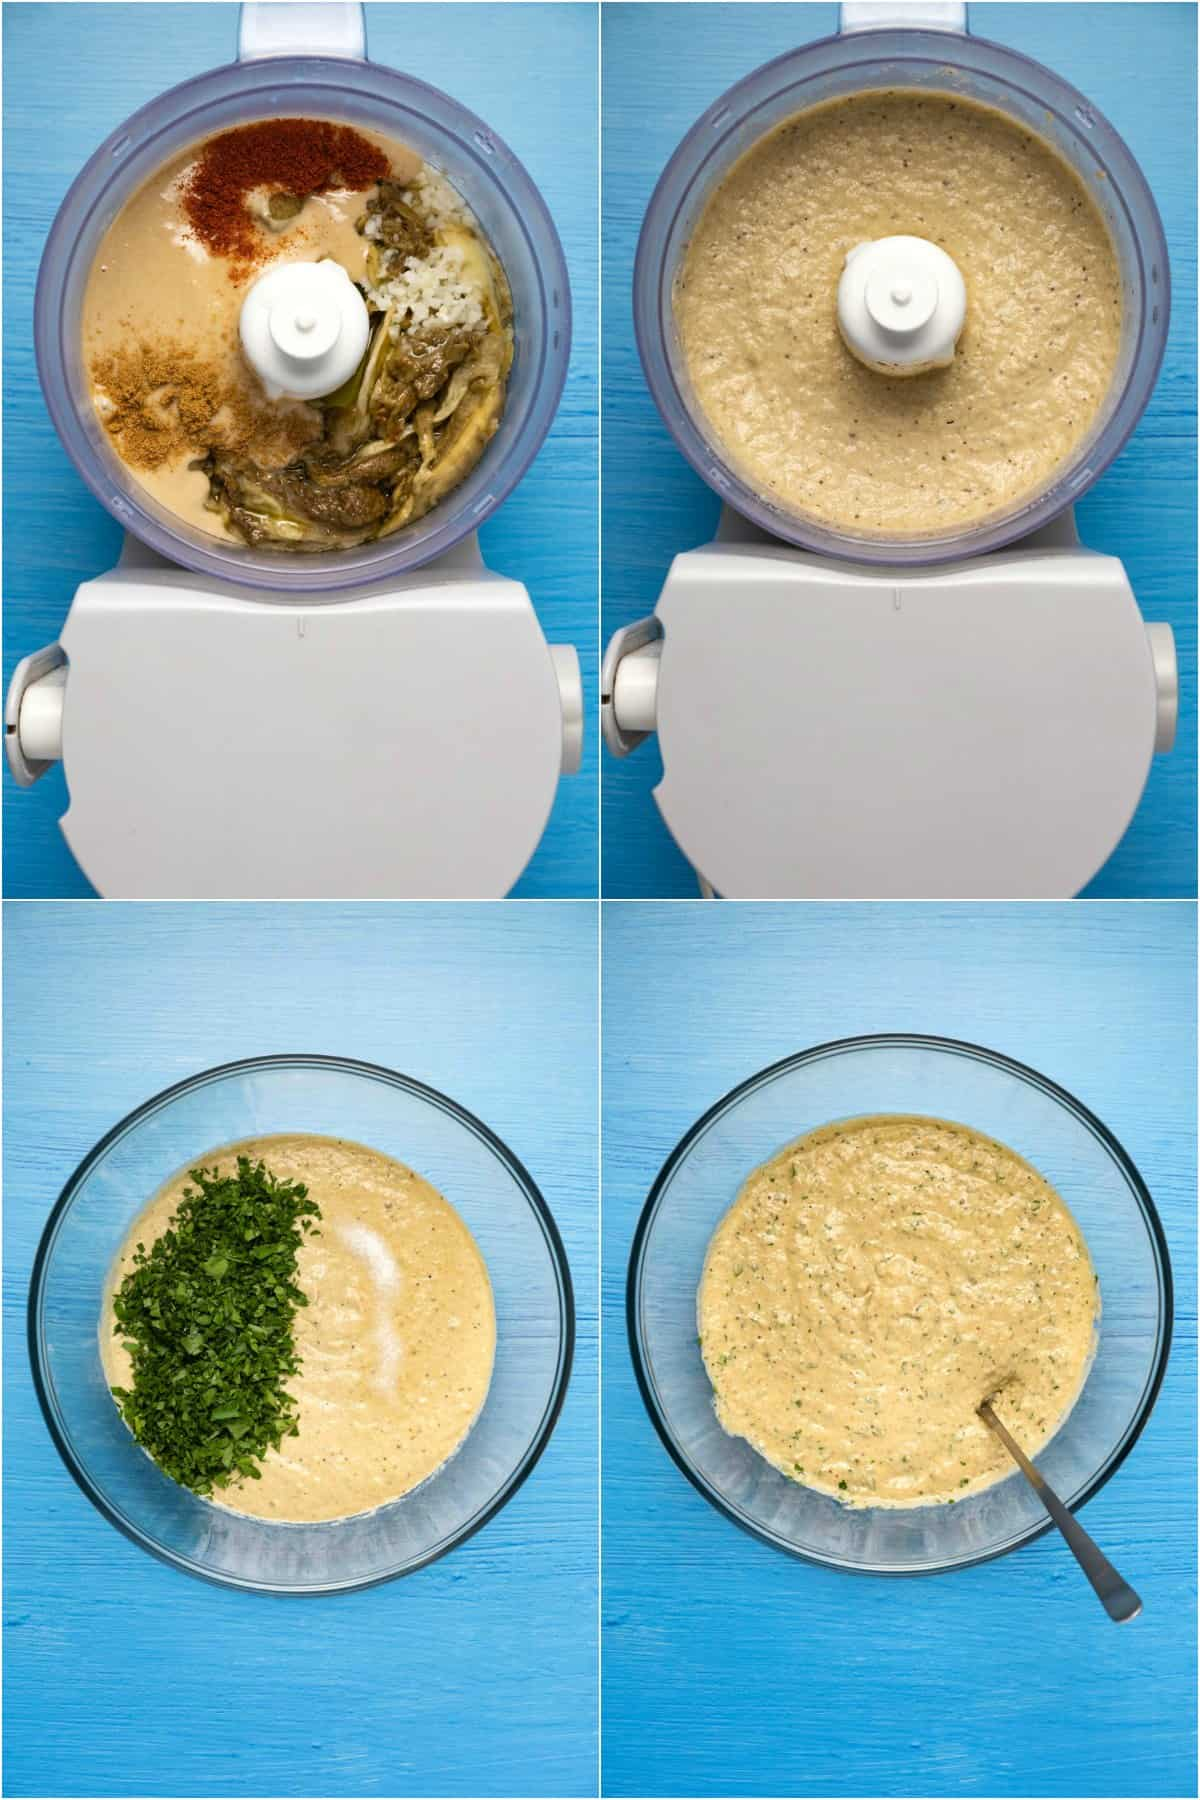 Step by step process photo collage of making baba ganoush.